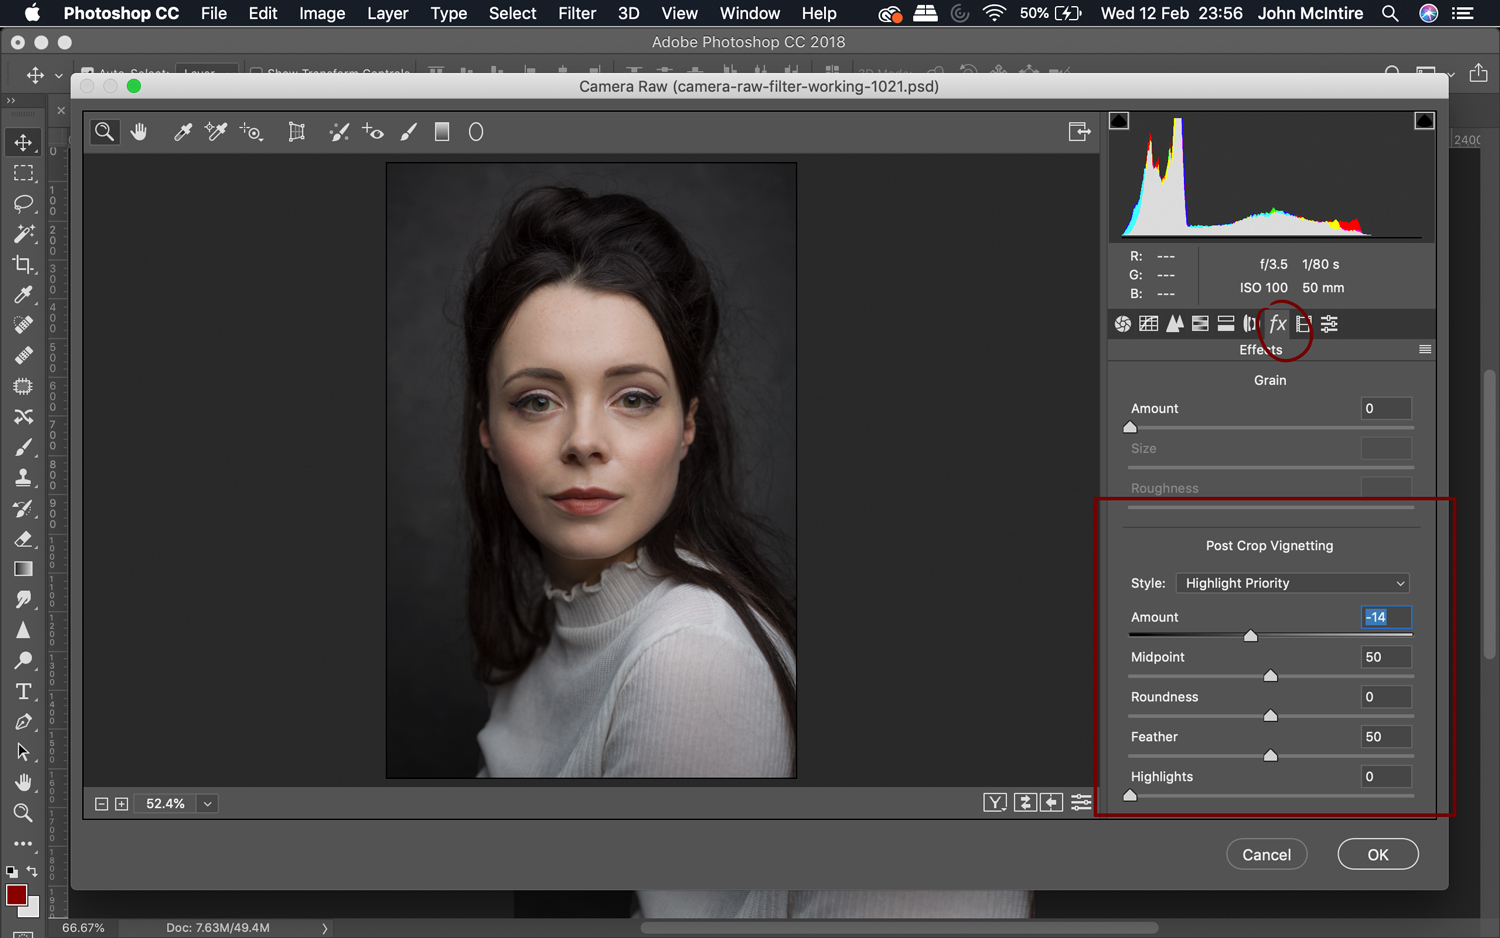 The vignette tool in the Photoshop Camera Raw Filter